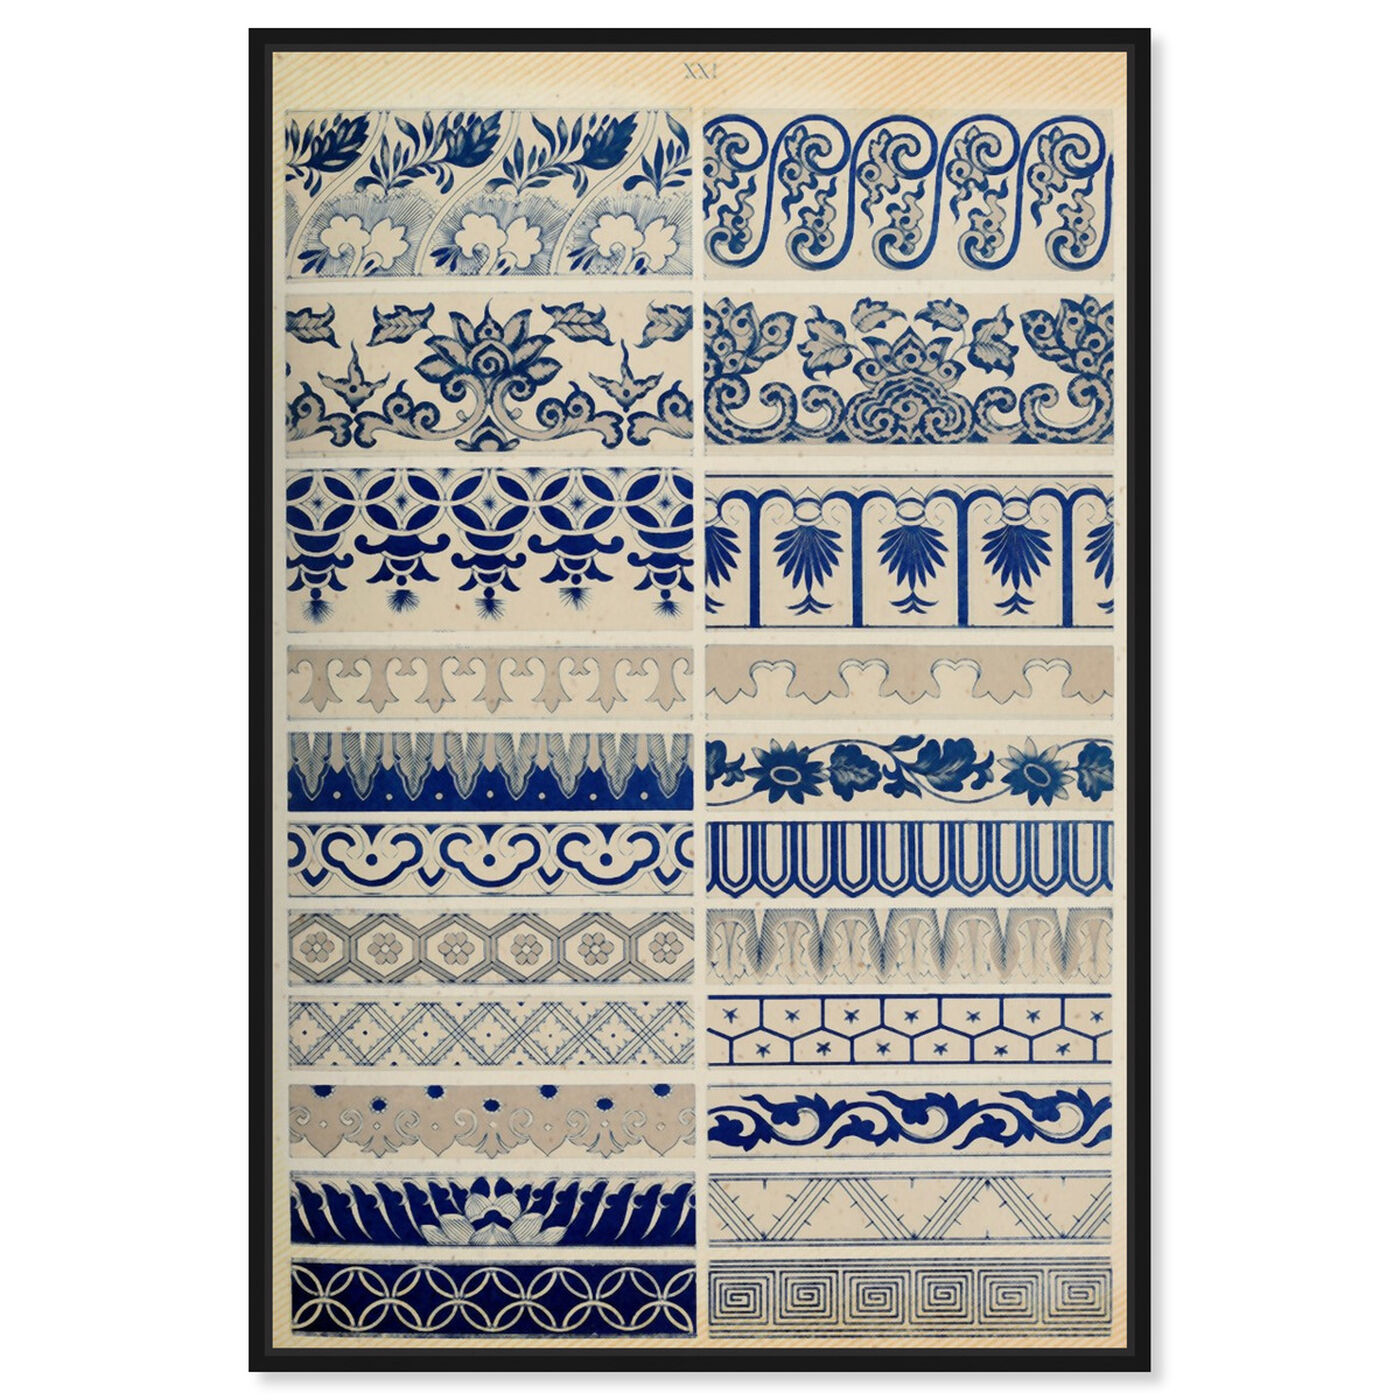 Front view of Ornaments 1867 Plate XXI featuring abstract and patterns art.